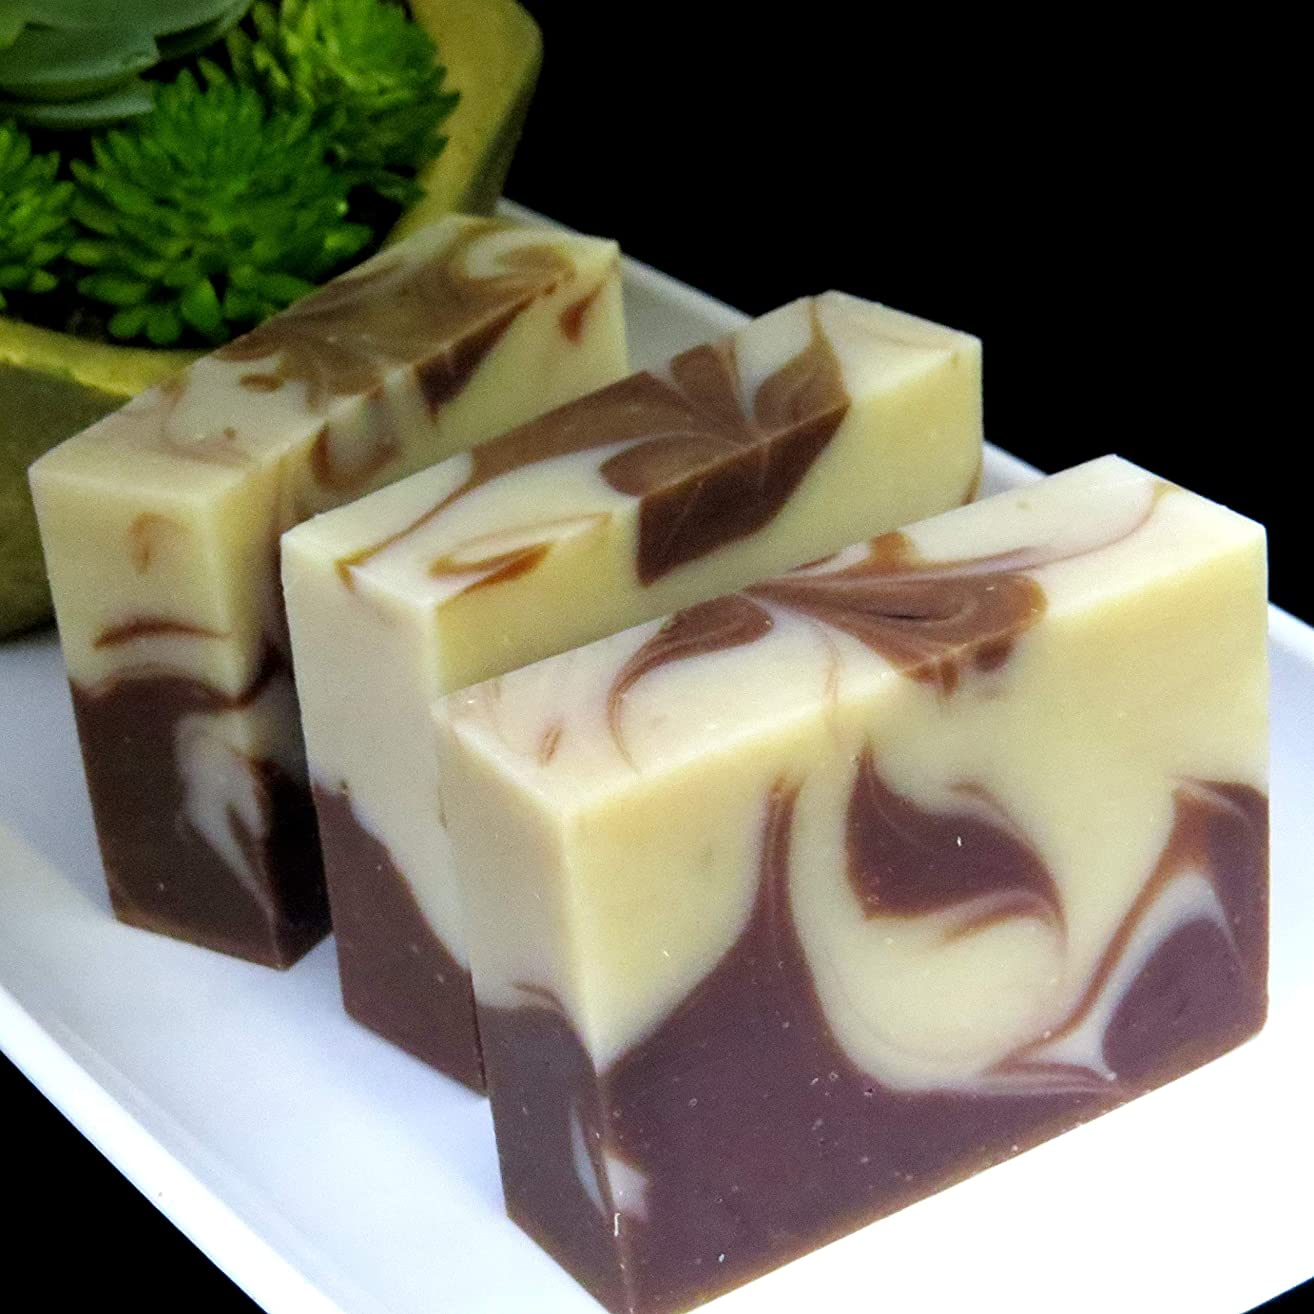 Organic Calming Coconut Milk l All Natural | Vegan Cold Process Handmade Soap l Jojoba l Kaolin Clay l